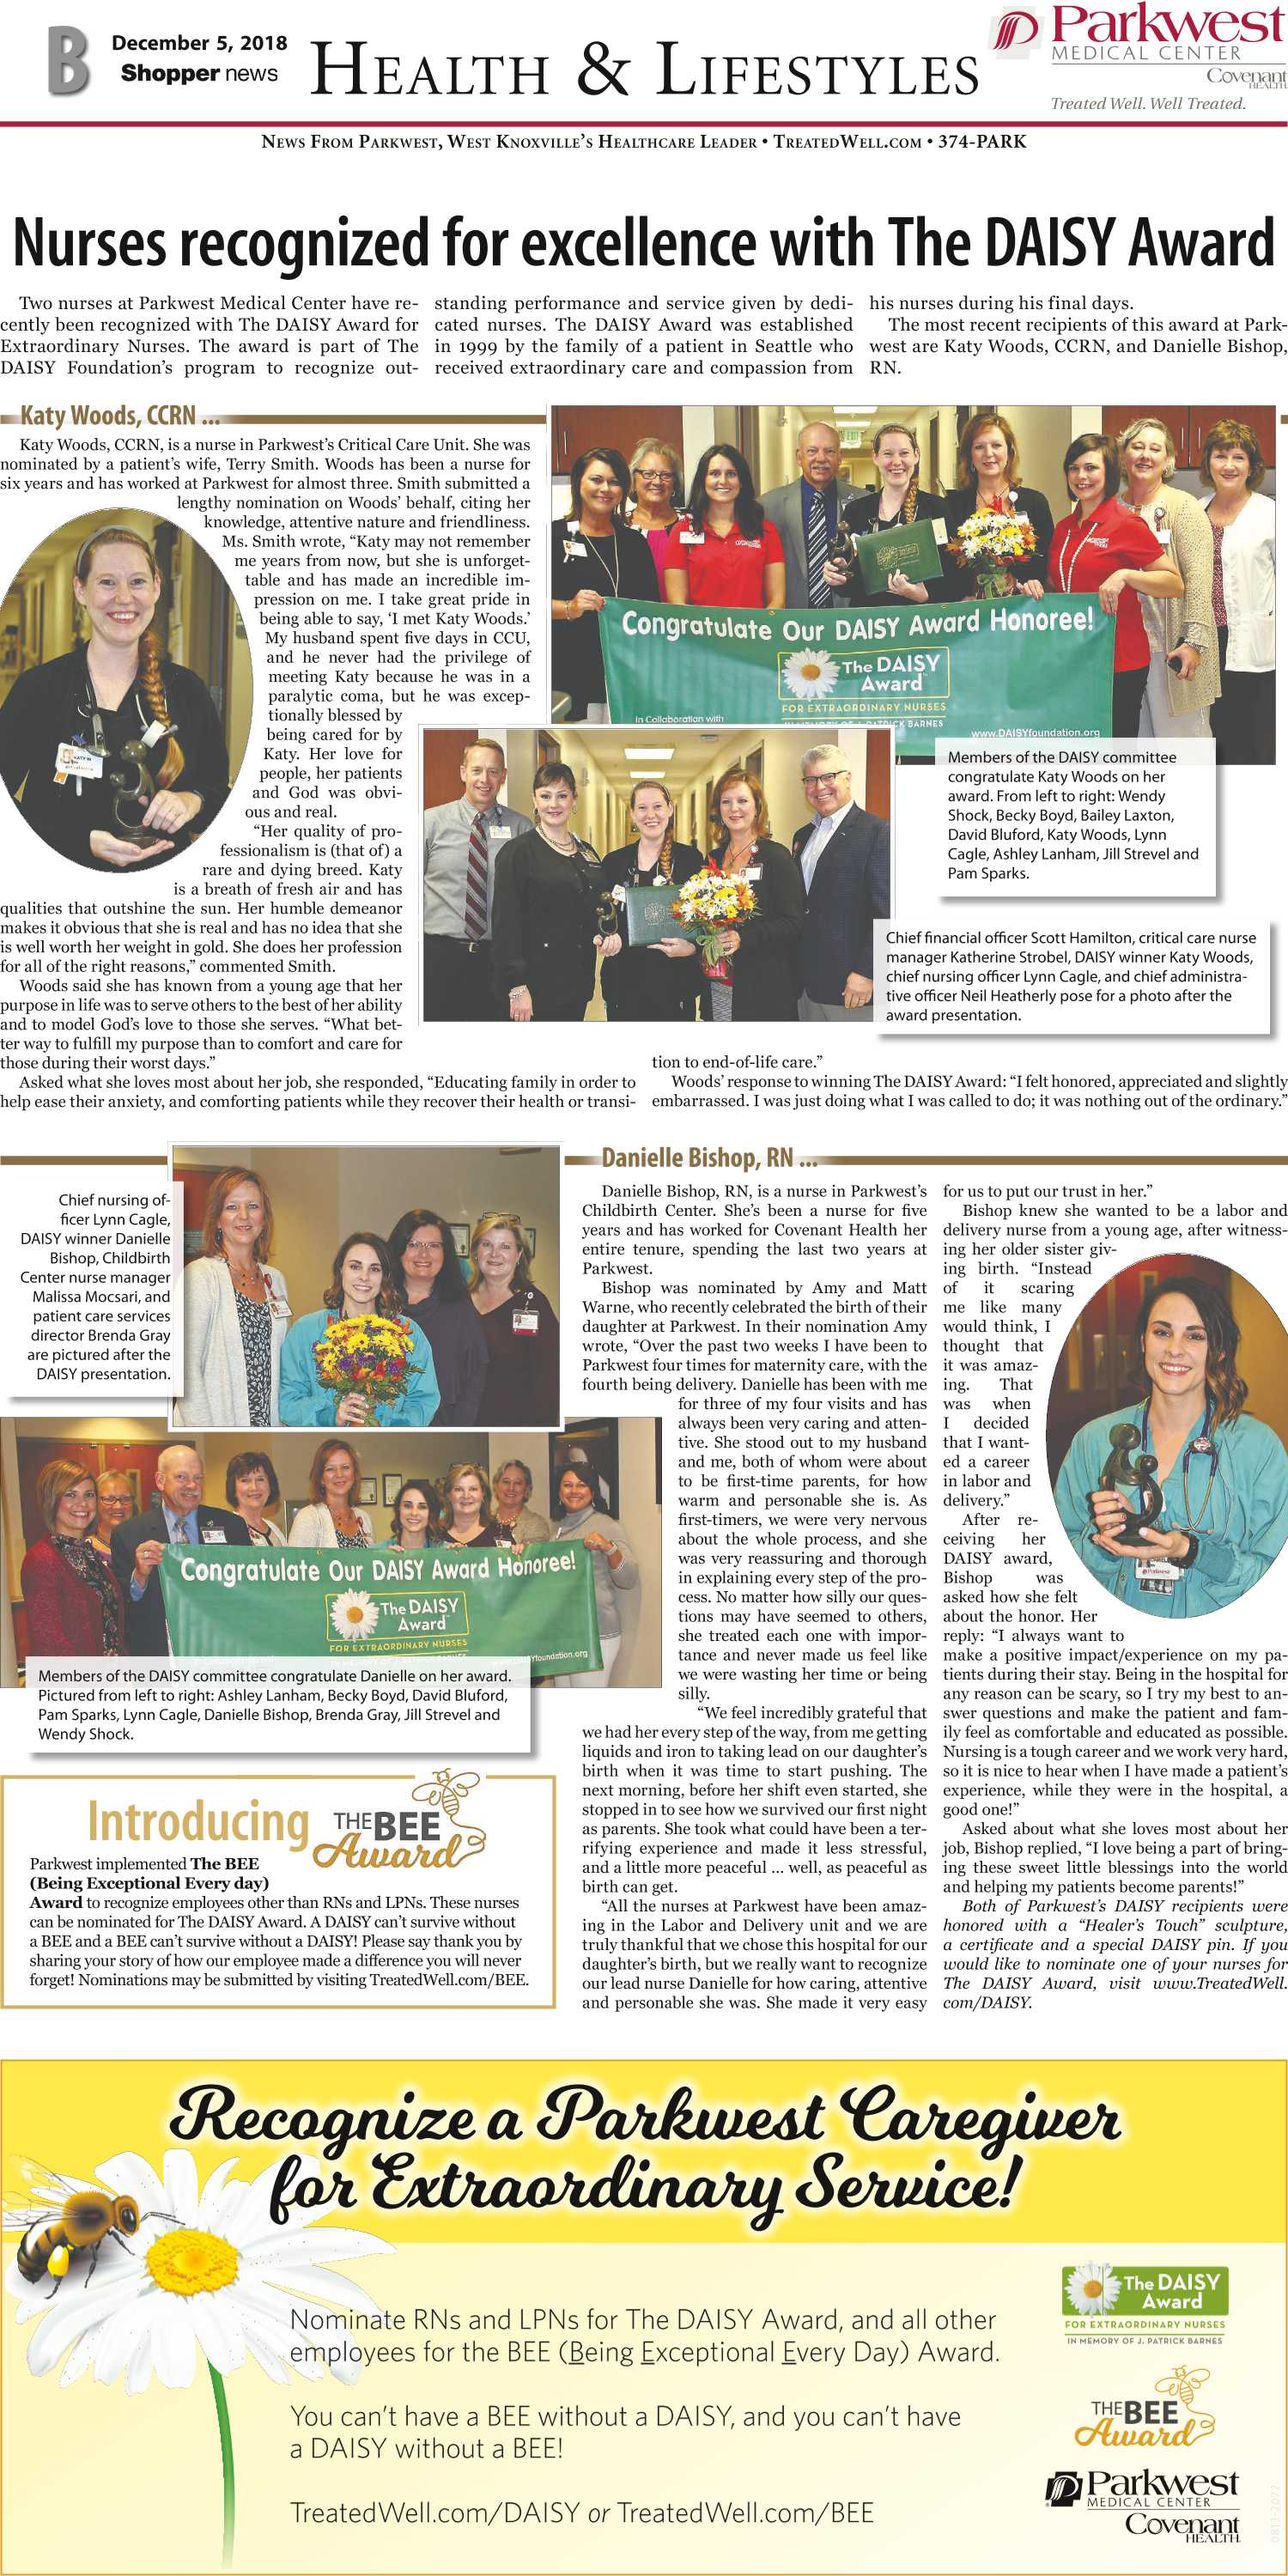 Nurses recognized for excellence with the DAISY Award